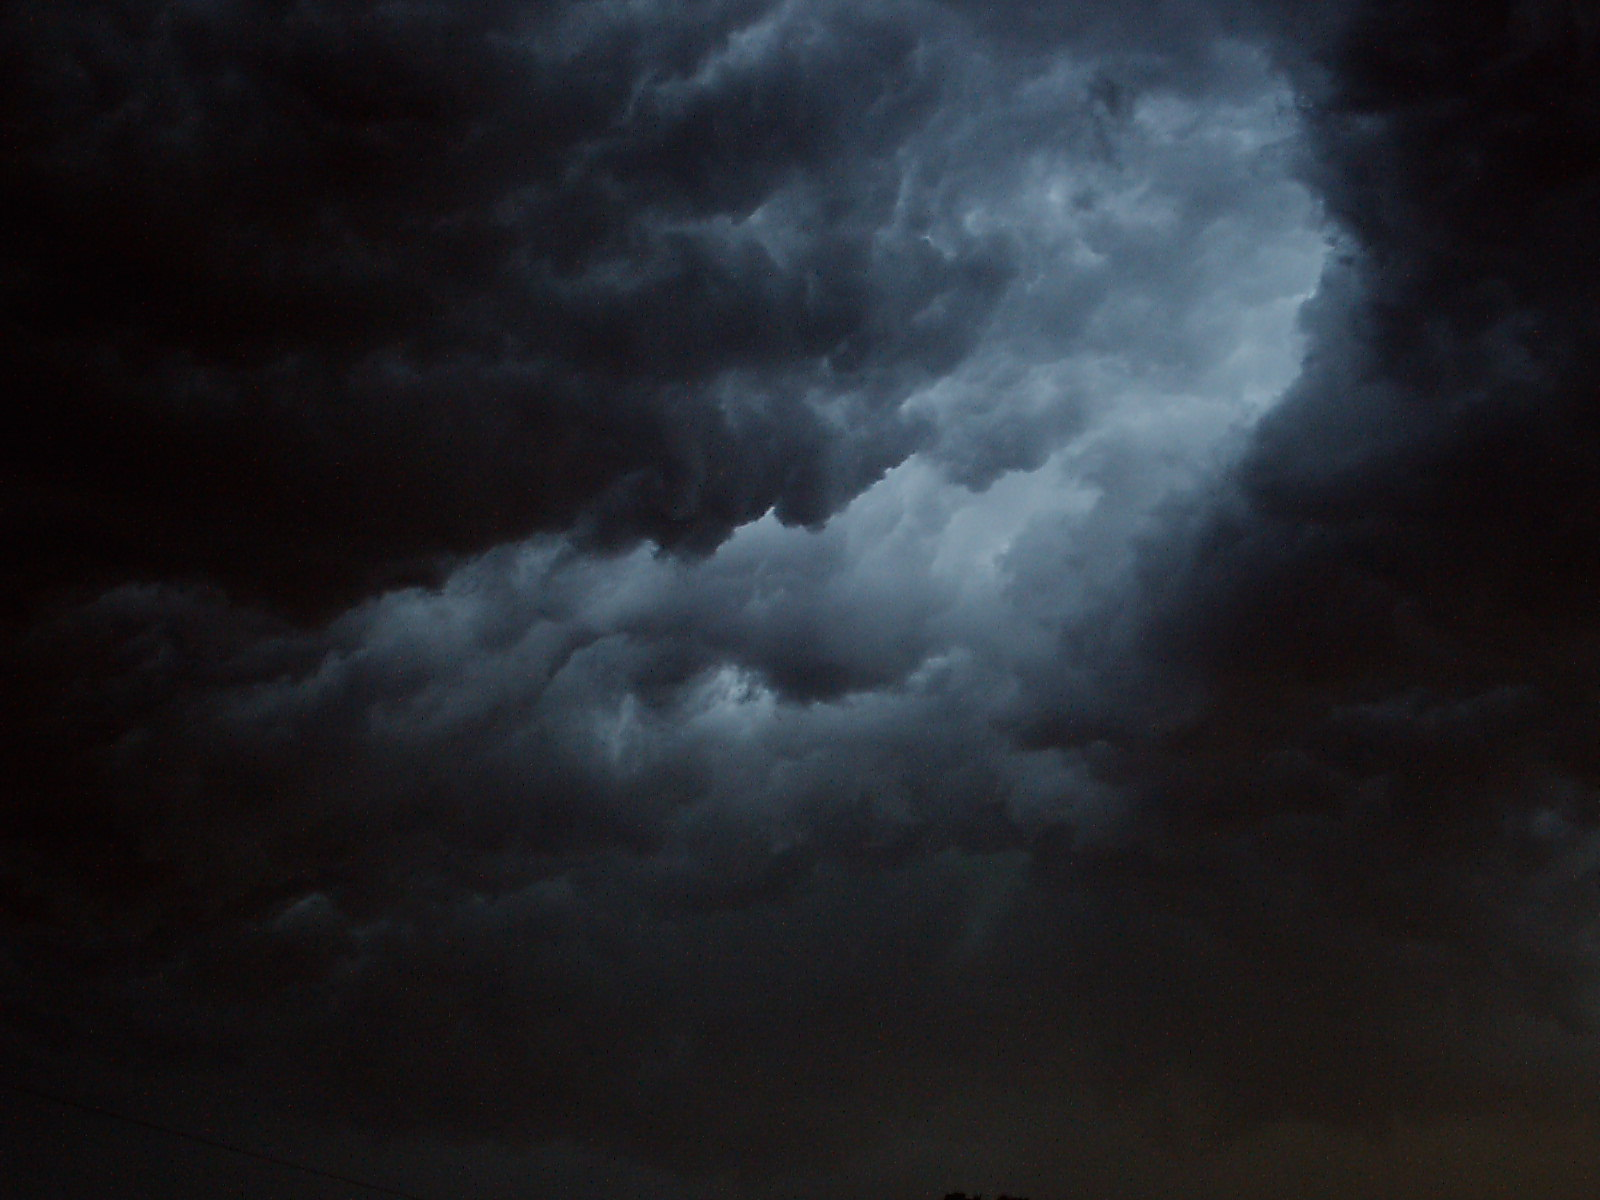 Black Storm Clouds by aowTNT Black Storm Clouds by aowTNT